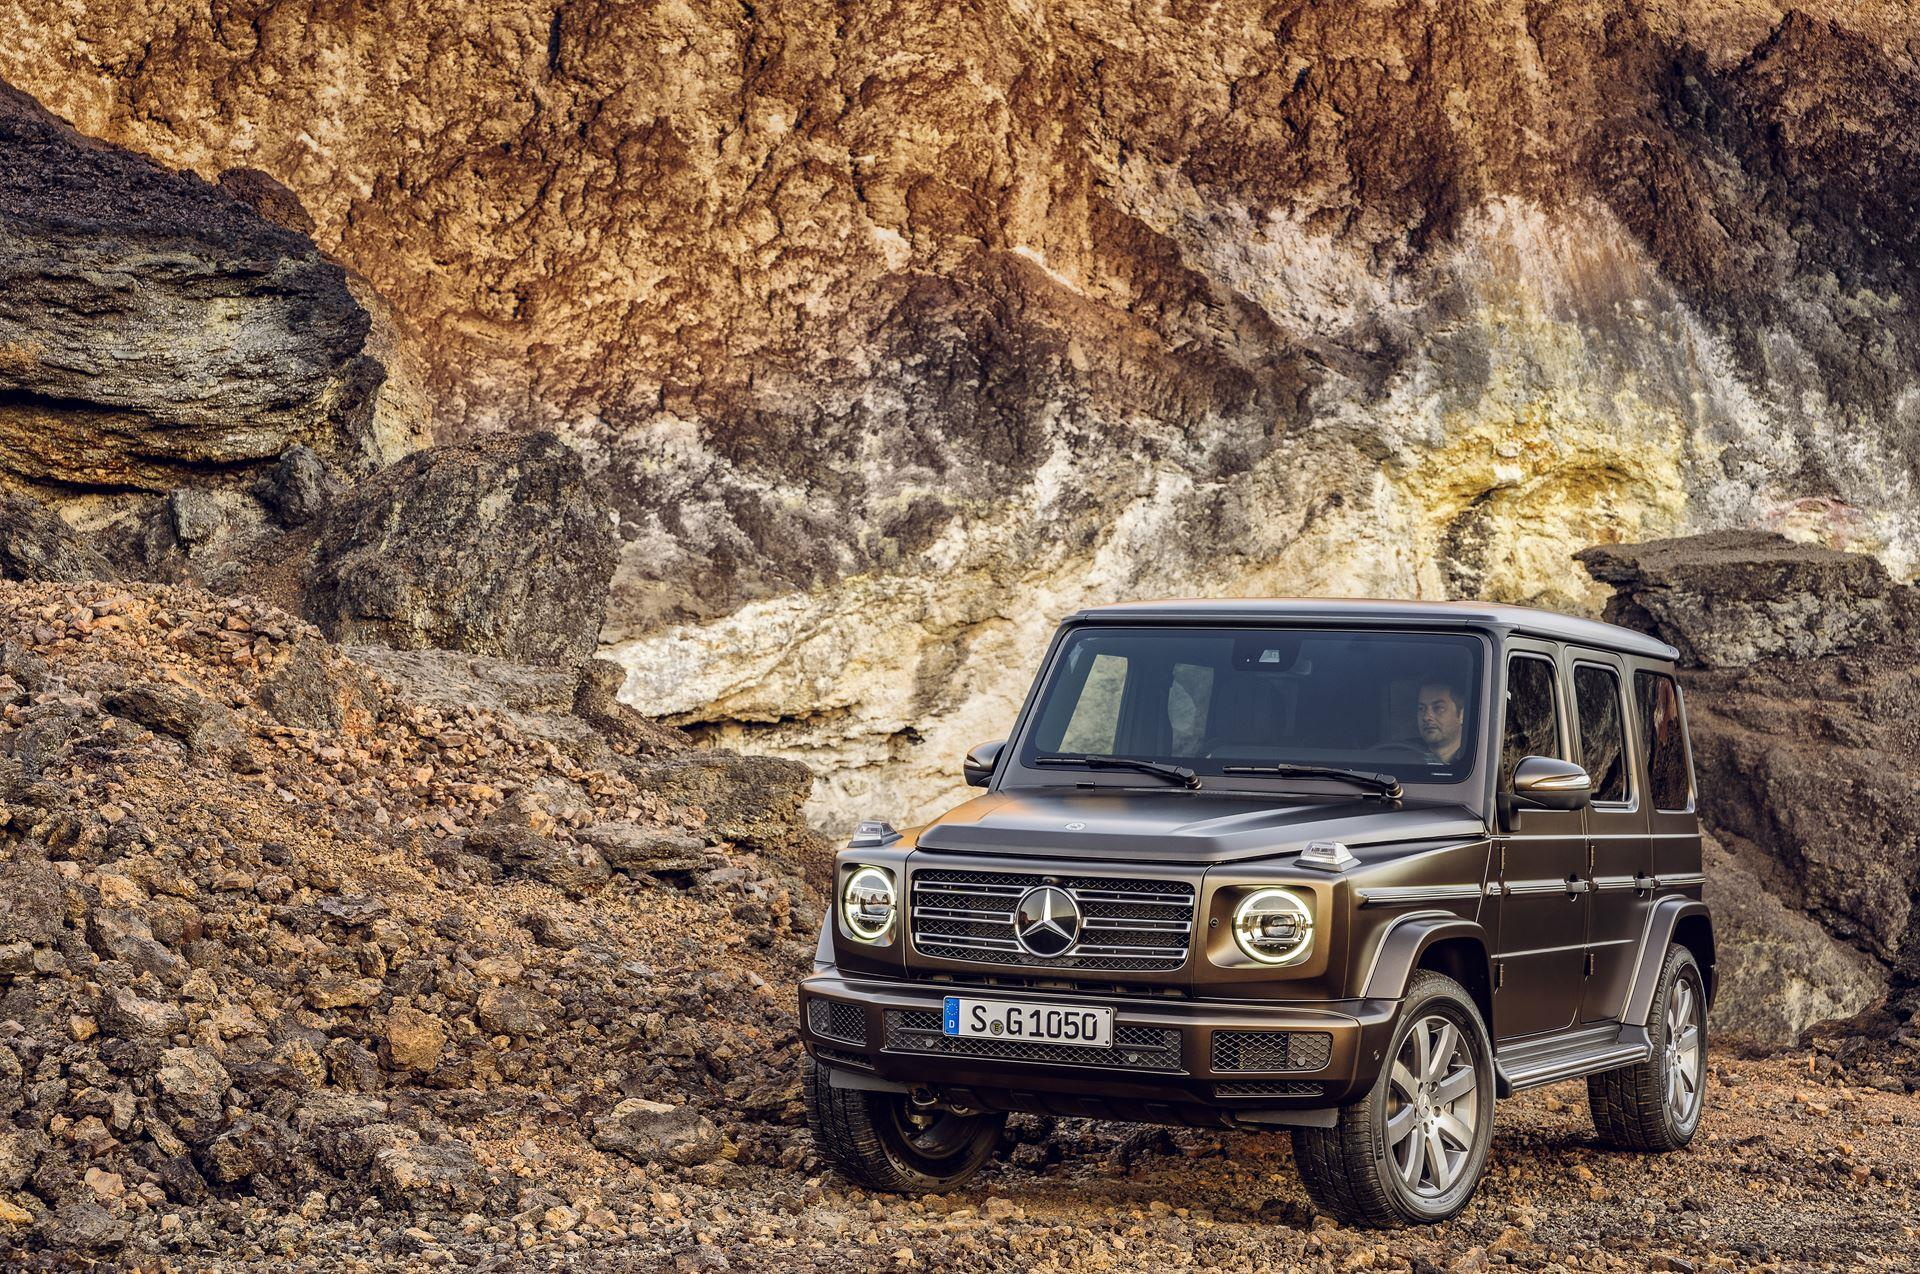 The artistic and creative reputation of mac computers and programs allows young professionals to express themselves in a number of ways. 2019 Mercedes Benz G Class Wallpapers Hd Drivespark